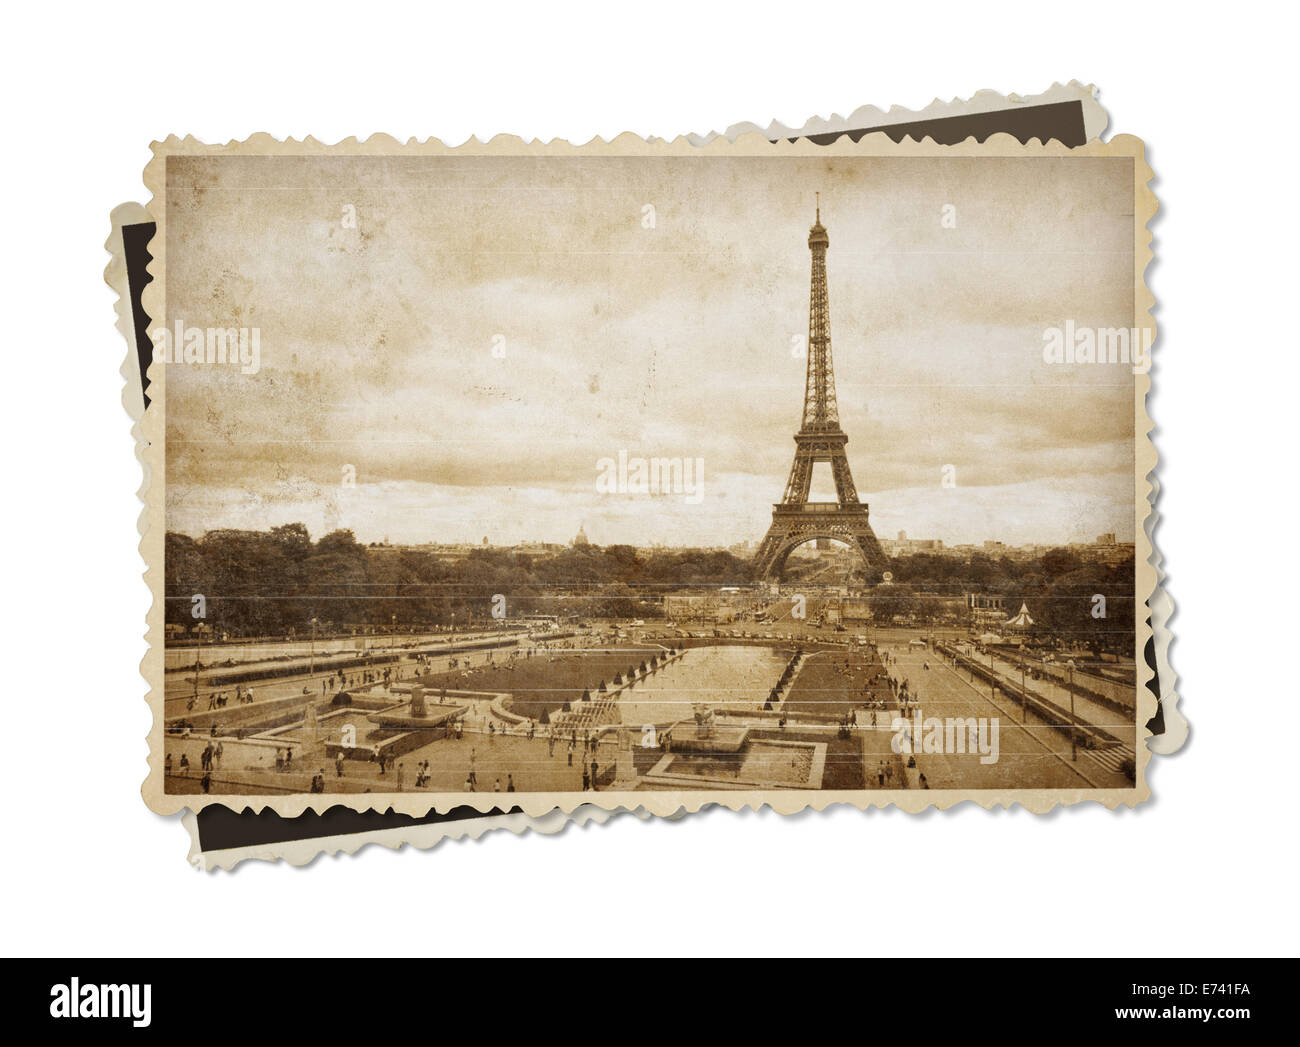 Eiffel tower in Paris vintage sepia toned postcard isolated on white - Stock Image